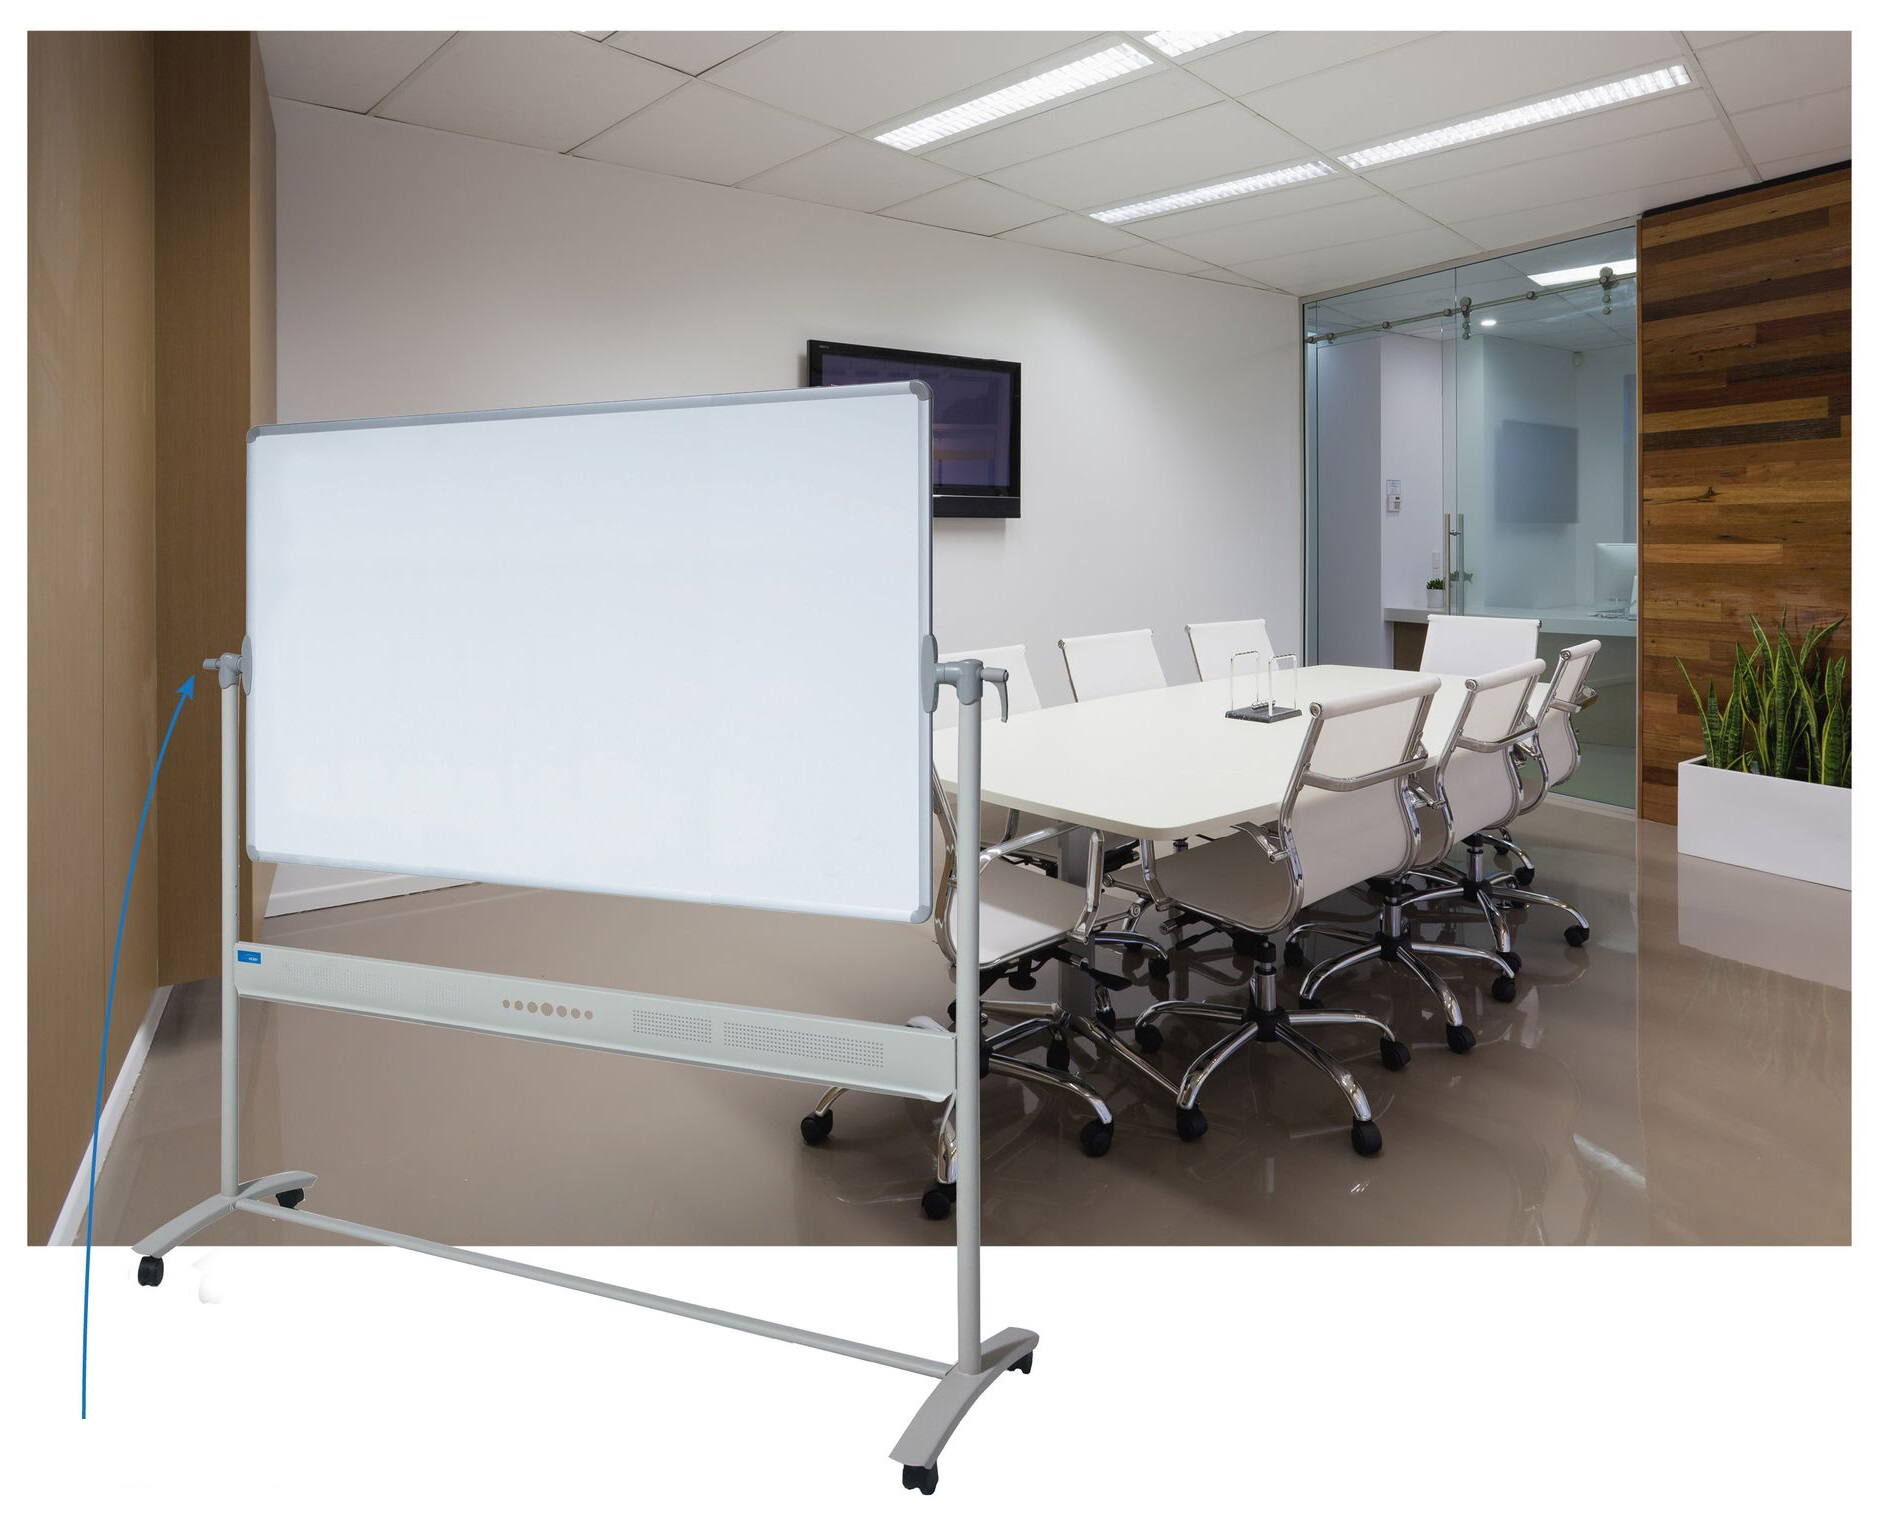 Porcelain Portable Whiteboard